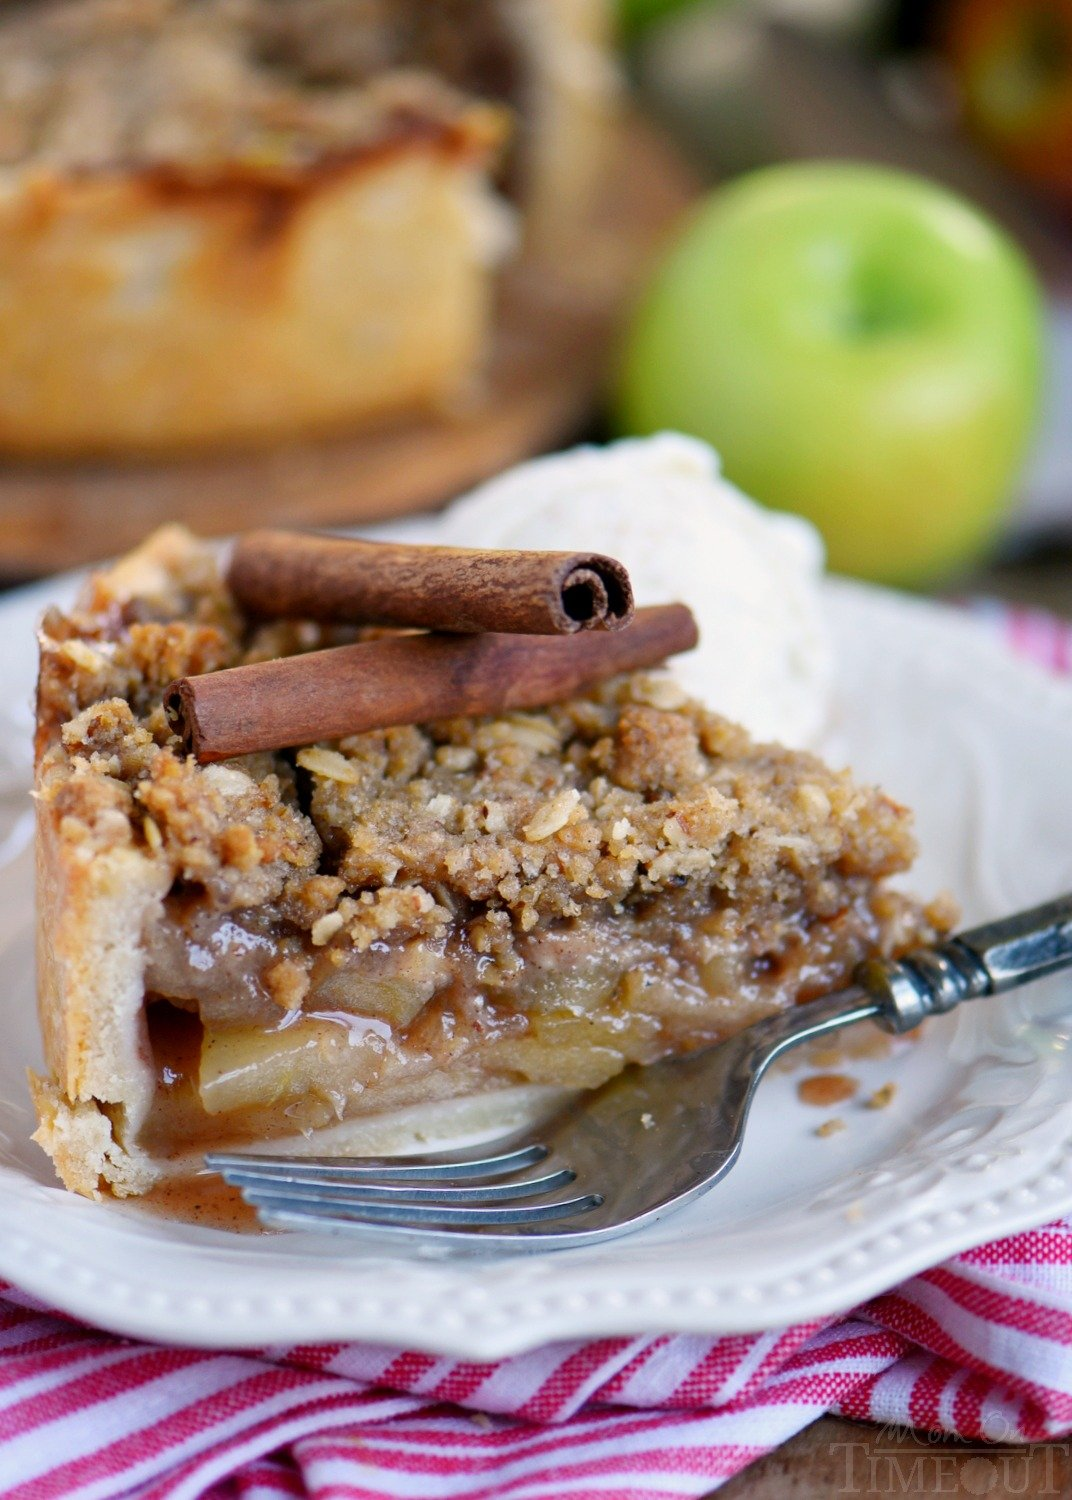 Deep Dish Dutch Apple Pie is loaded with a spiced apple filling and topped with a crunchy, sweet, pecan streusel topping. Best served with a big scoop of vanilla ice cream and caramel sauce. This is THE dessert for the fall season! | Mom On Timeout